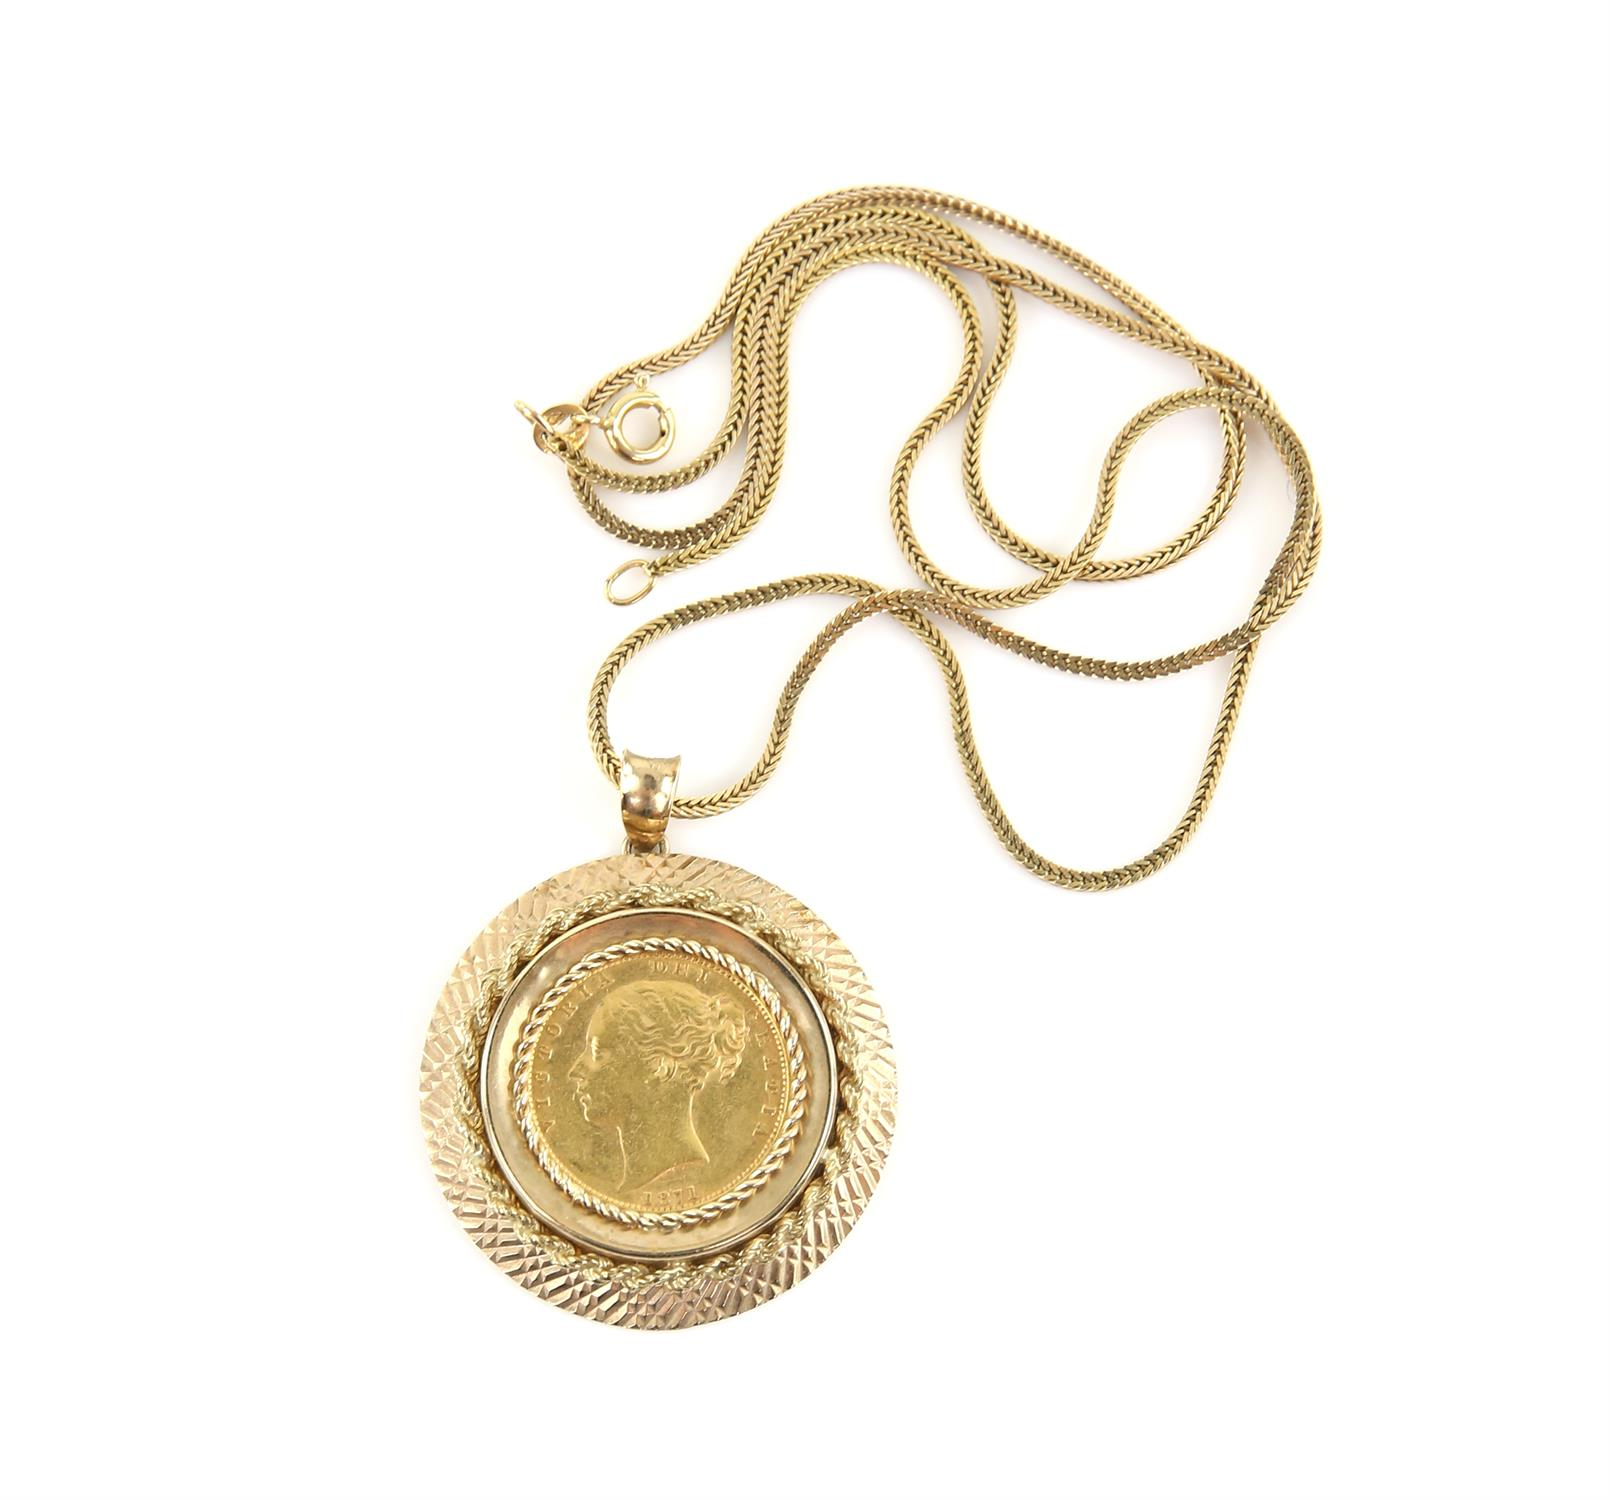 Pendant coin mount, in 9 ct set with a Victorian 1871 shield back sovereign, on a fancy link chain, - Image 3 of 3